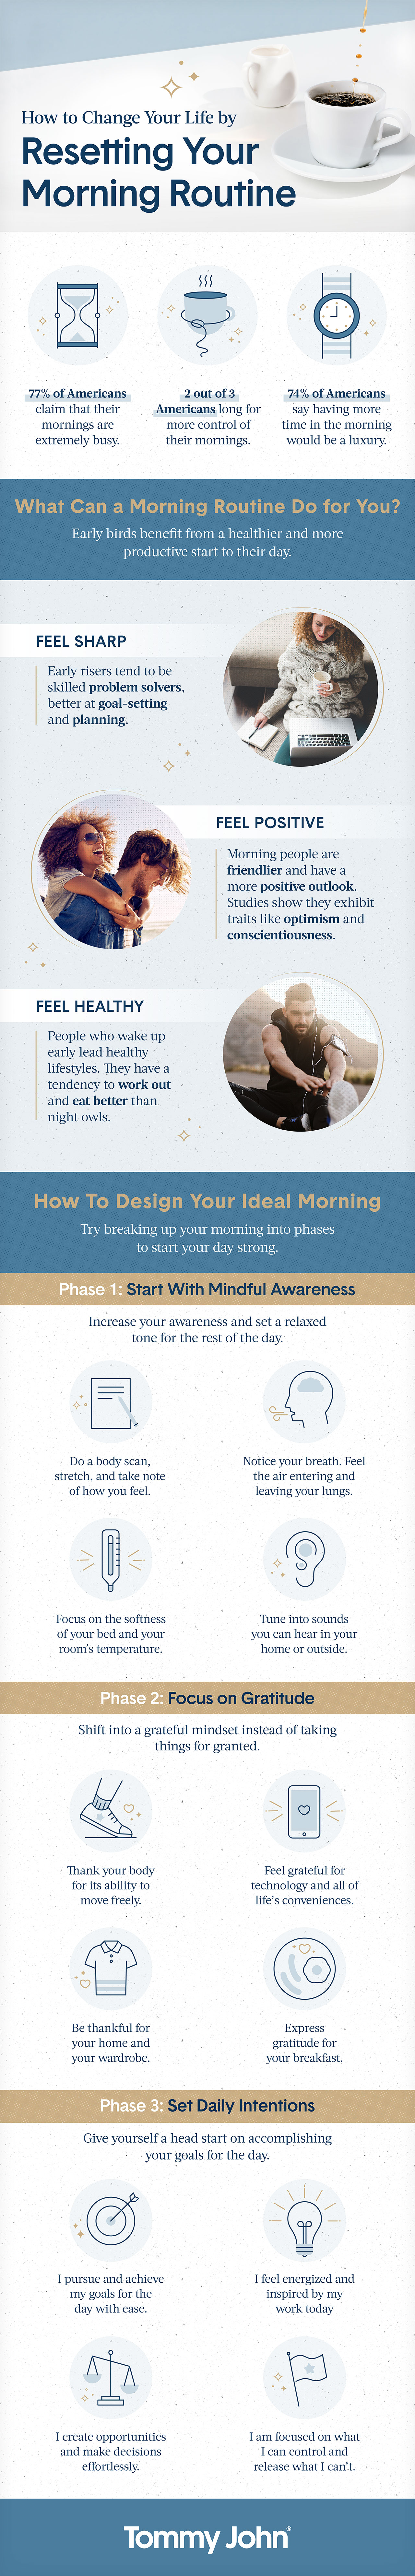 Ways to Reset Your Morning Routine